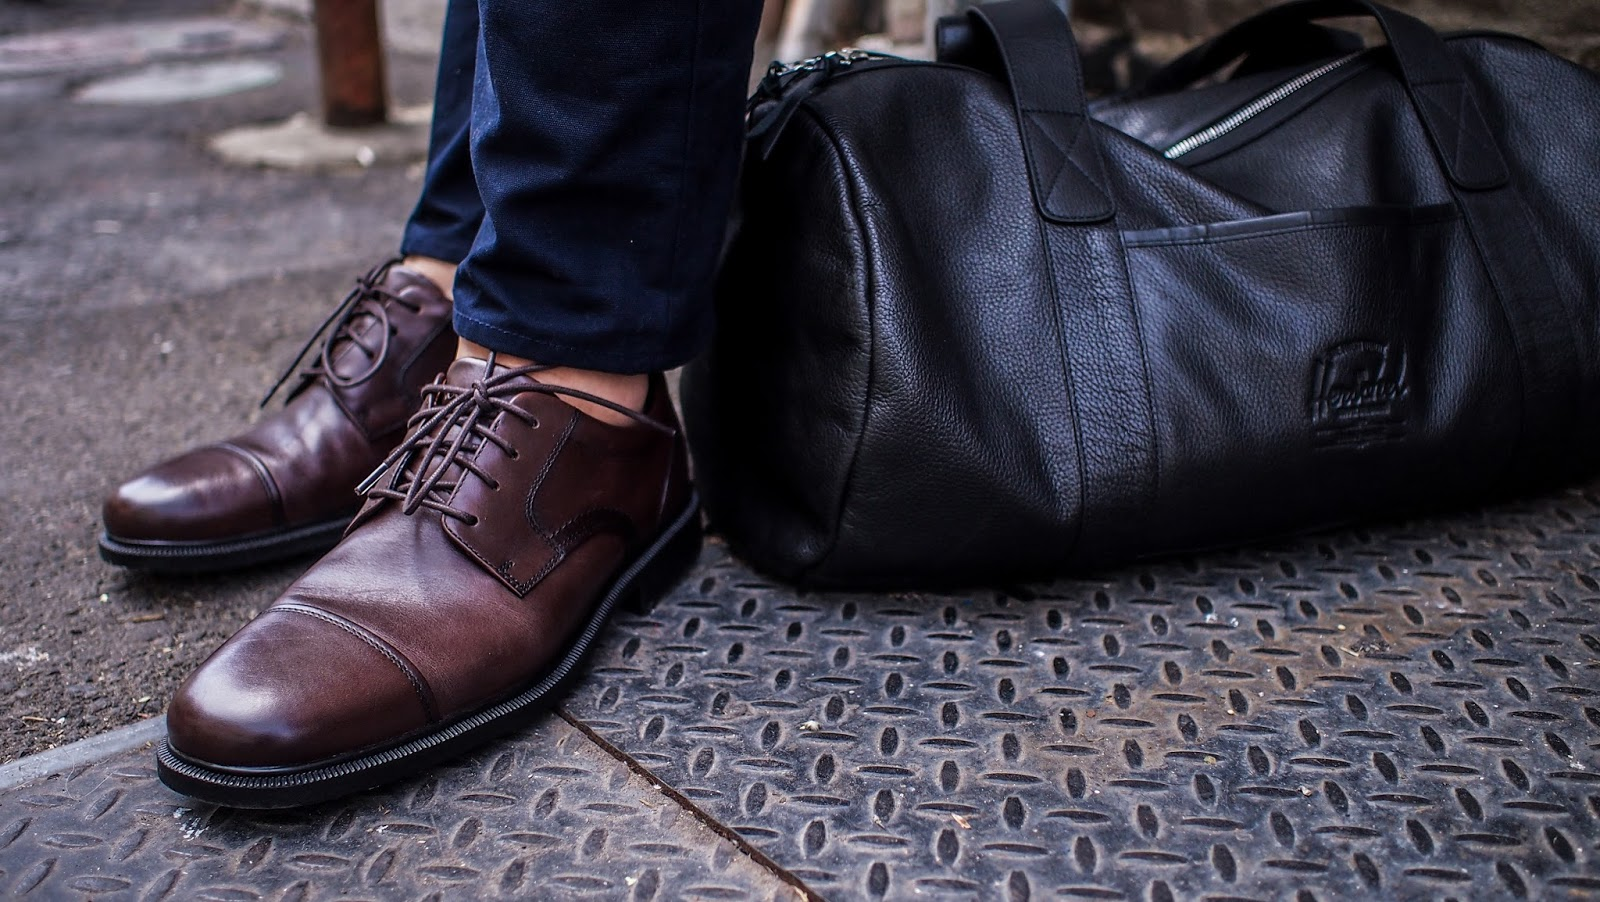 Rockport Shoes Giveaway